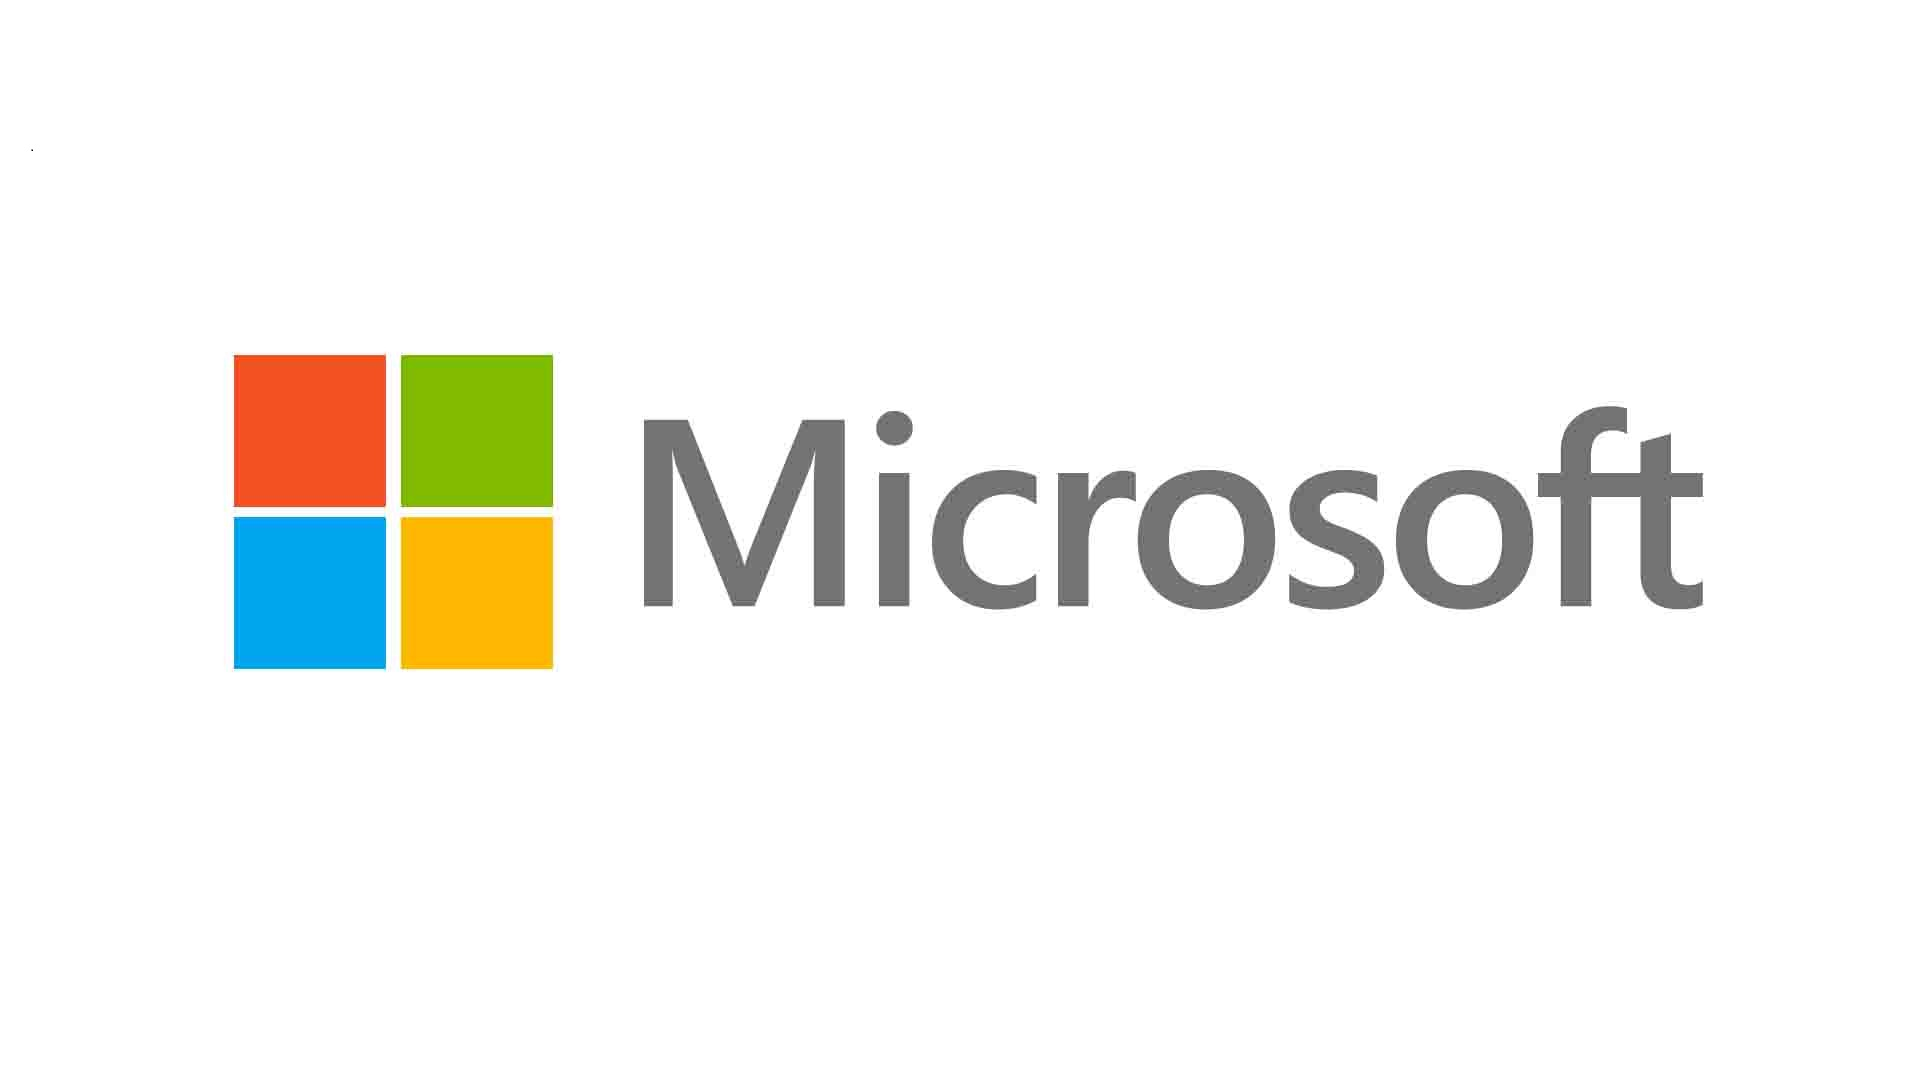 Microsoft Corporation (NASDAQ:MSFT) Says Connected Vehicle Platform A Service For Others To Utilize